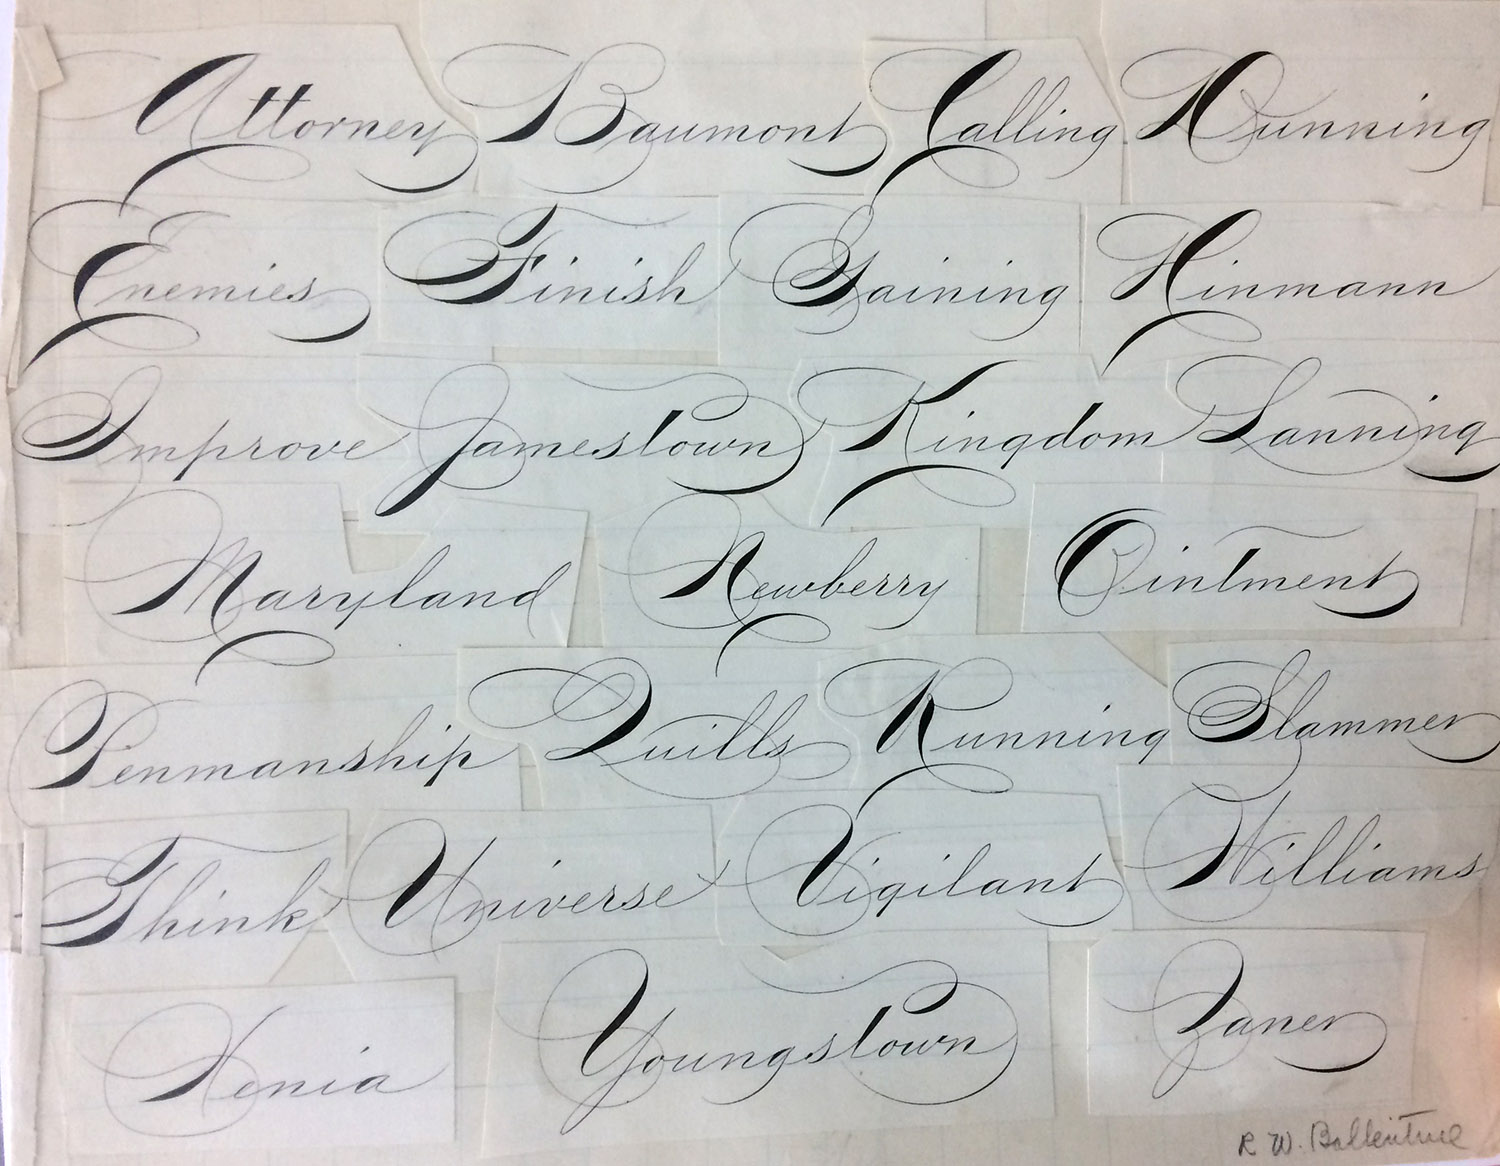 penmaship_specimens_letterforms_012.jpg